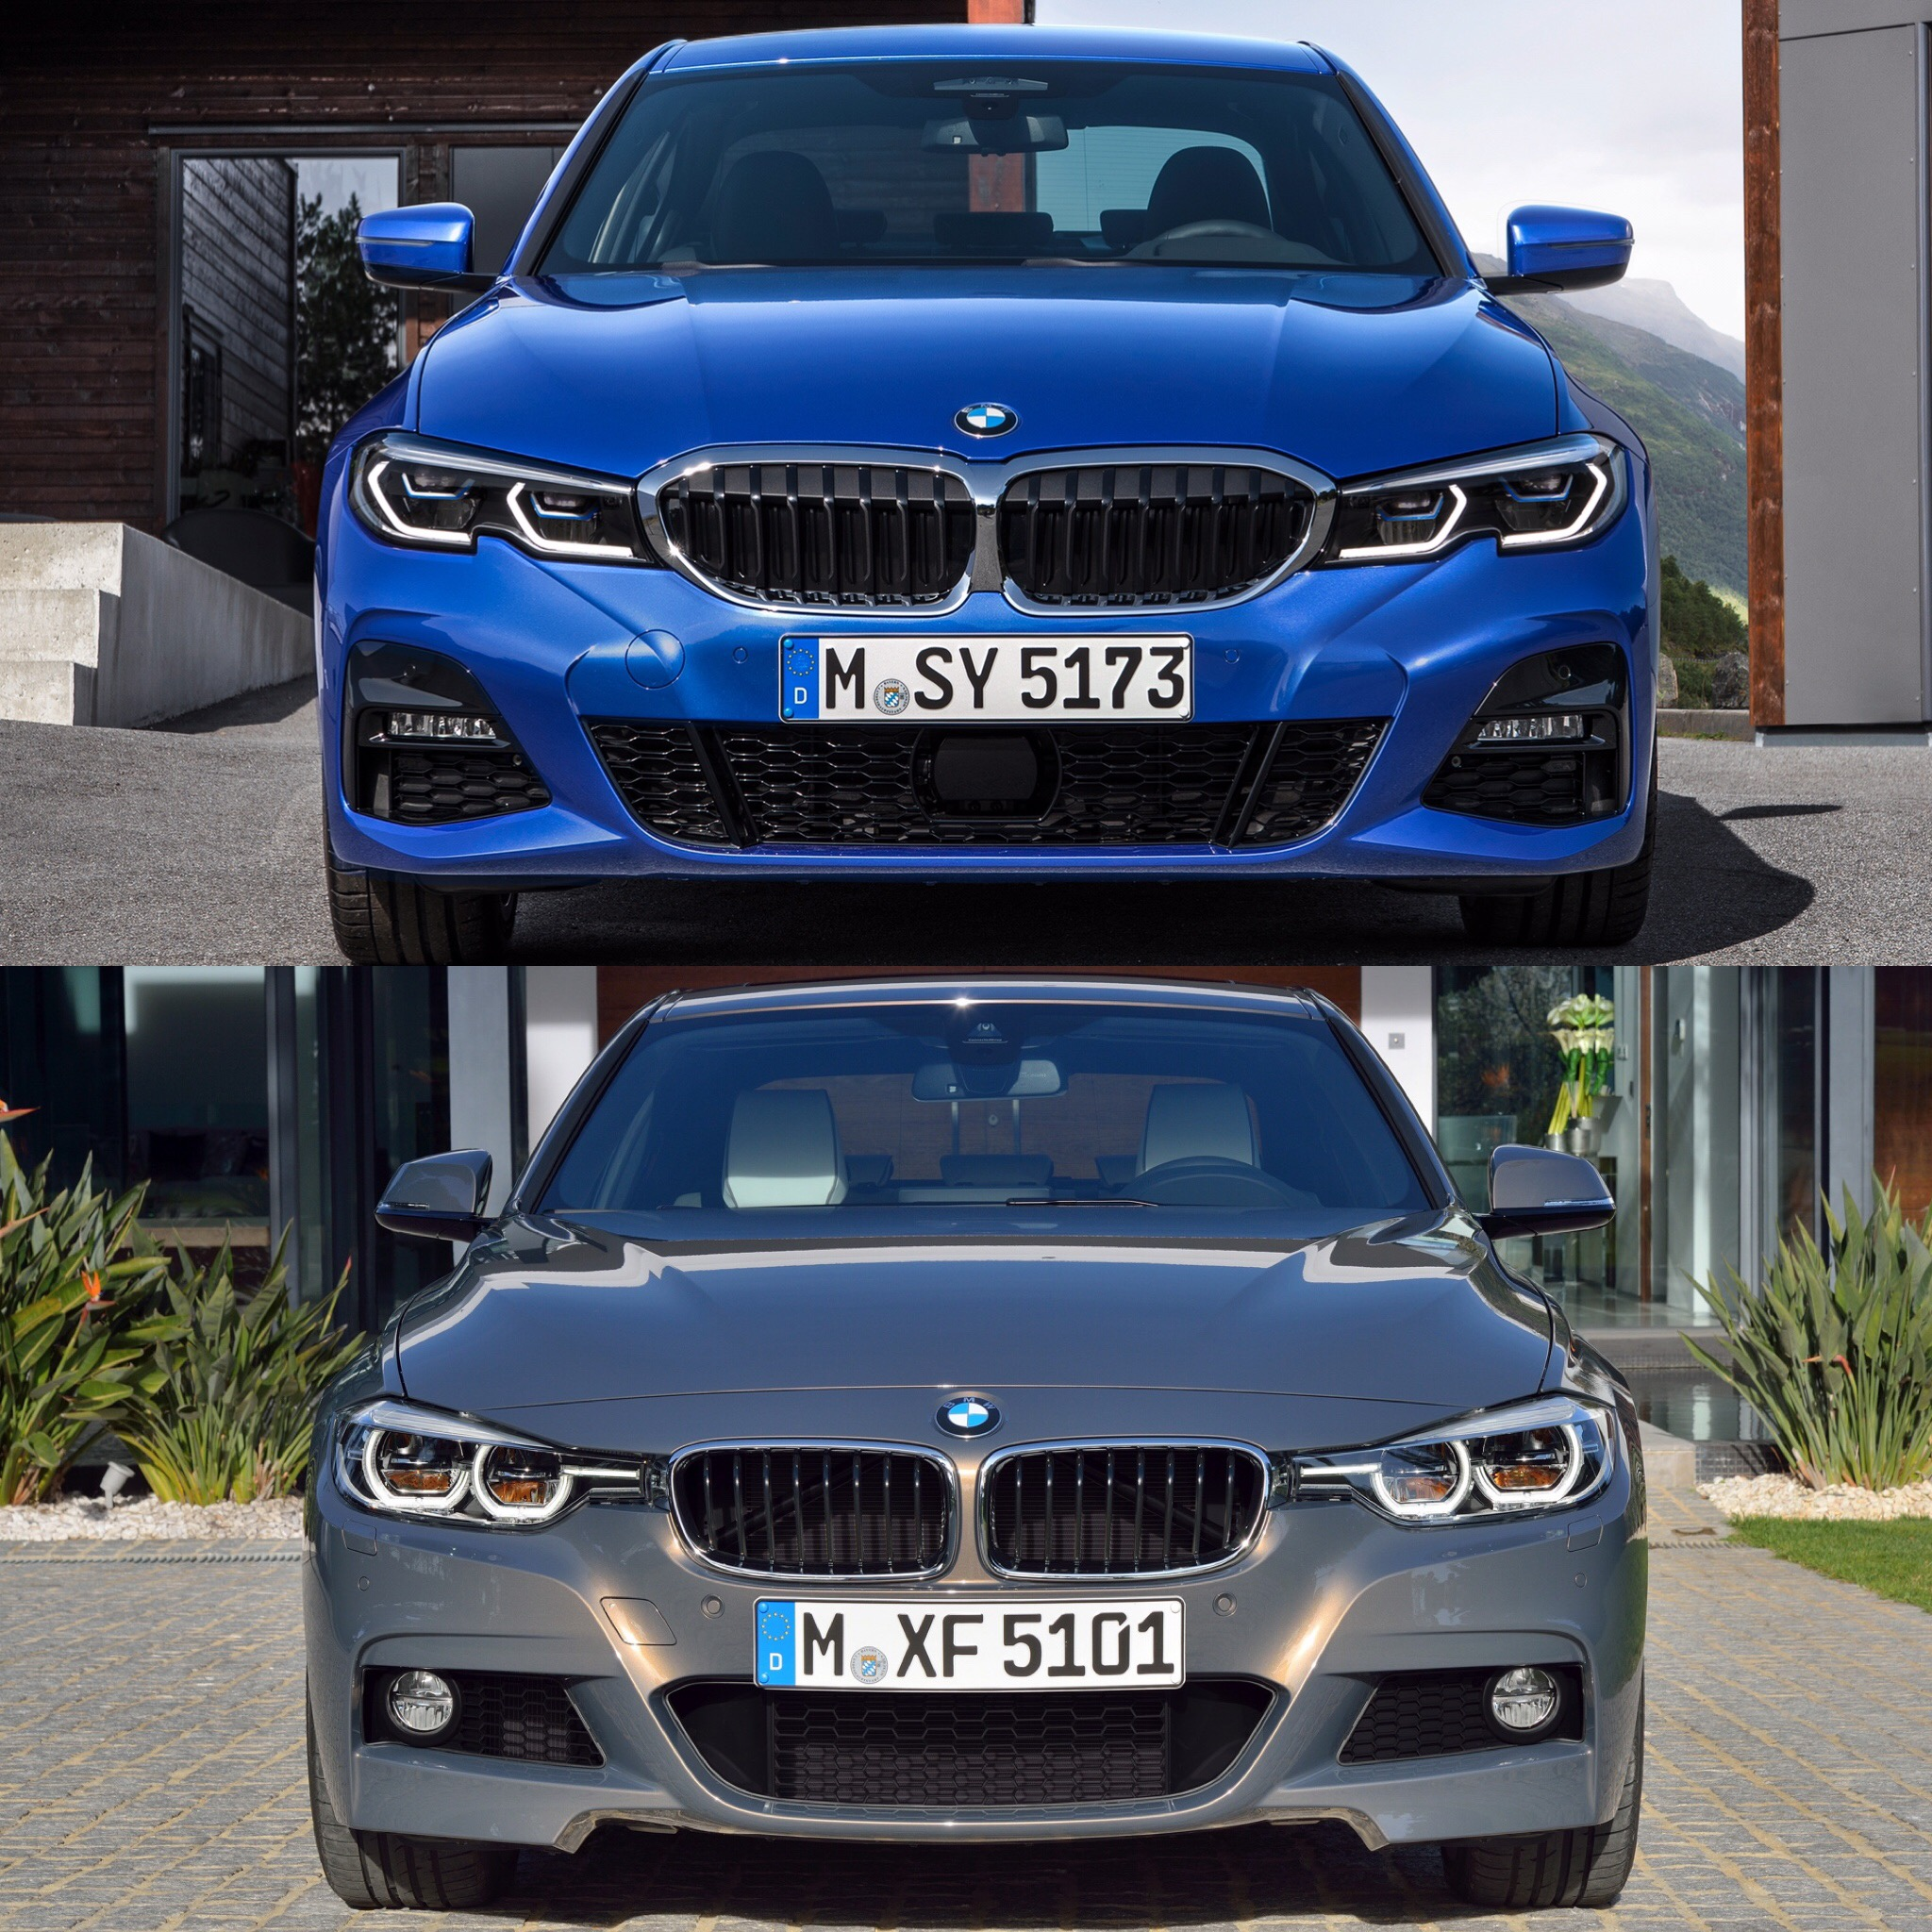 BMW 3 Series Sedan (G20) exterior big